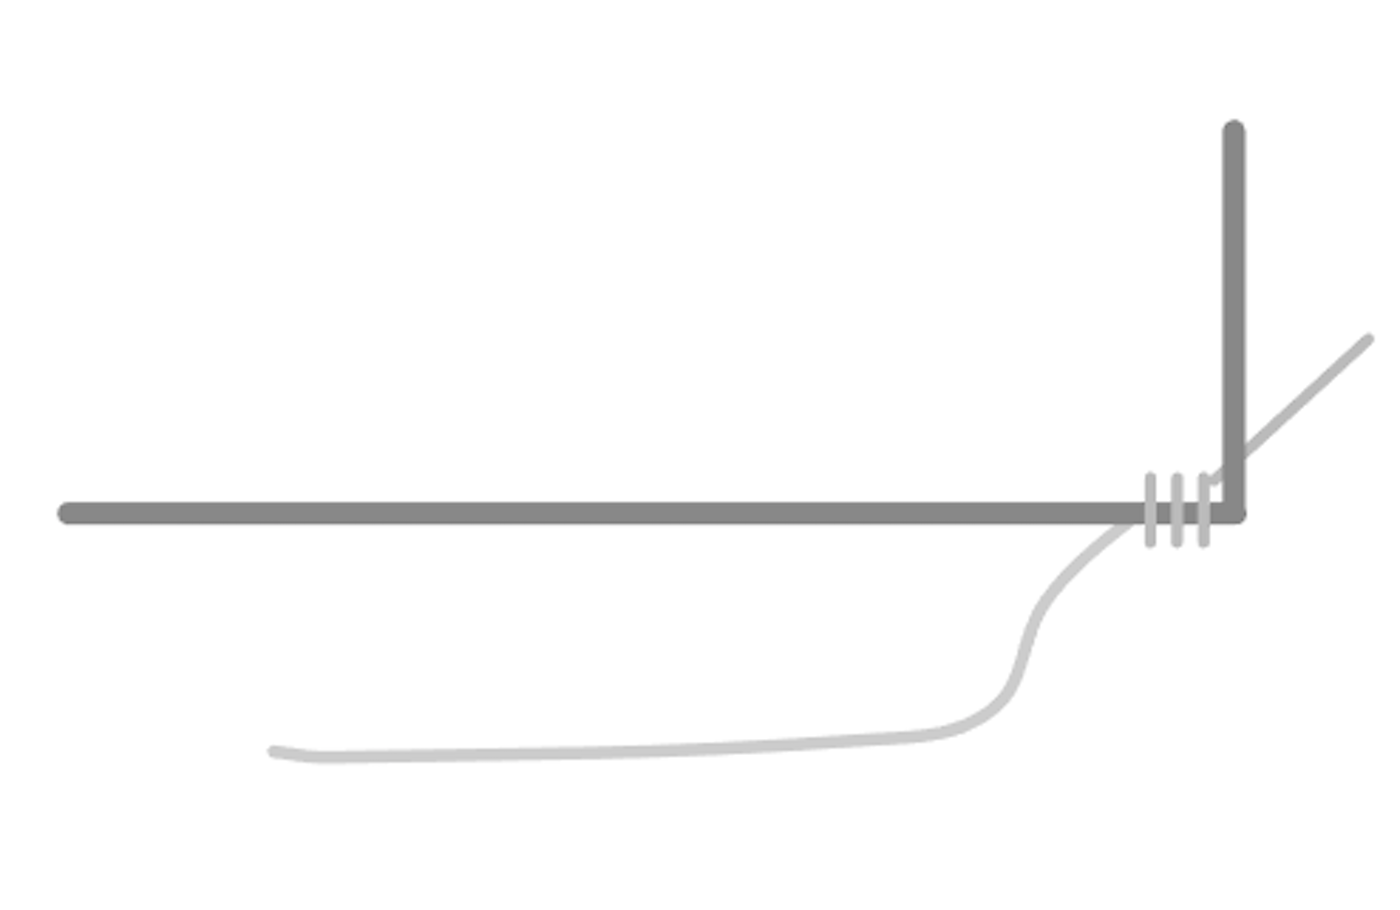 """step 2 - Cut 26 gauge wire to a length of 46"""". We'll call this the beginning Wrap wire. Leaving a 2"""" tail, wrap the Wrap wire around the Base wire three times at the 90 degree angle."""